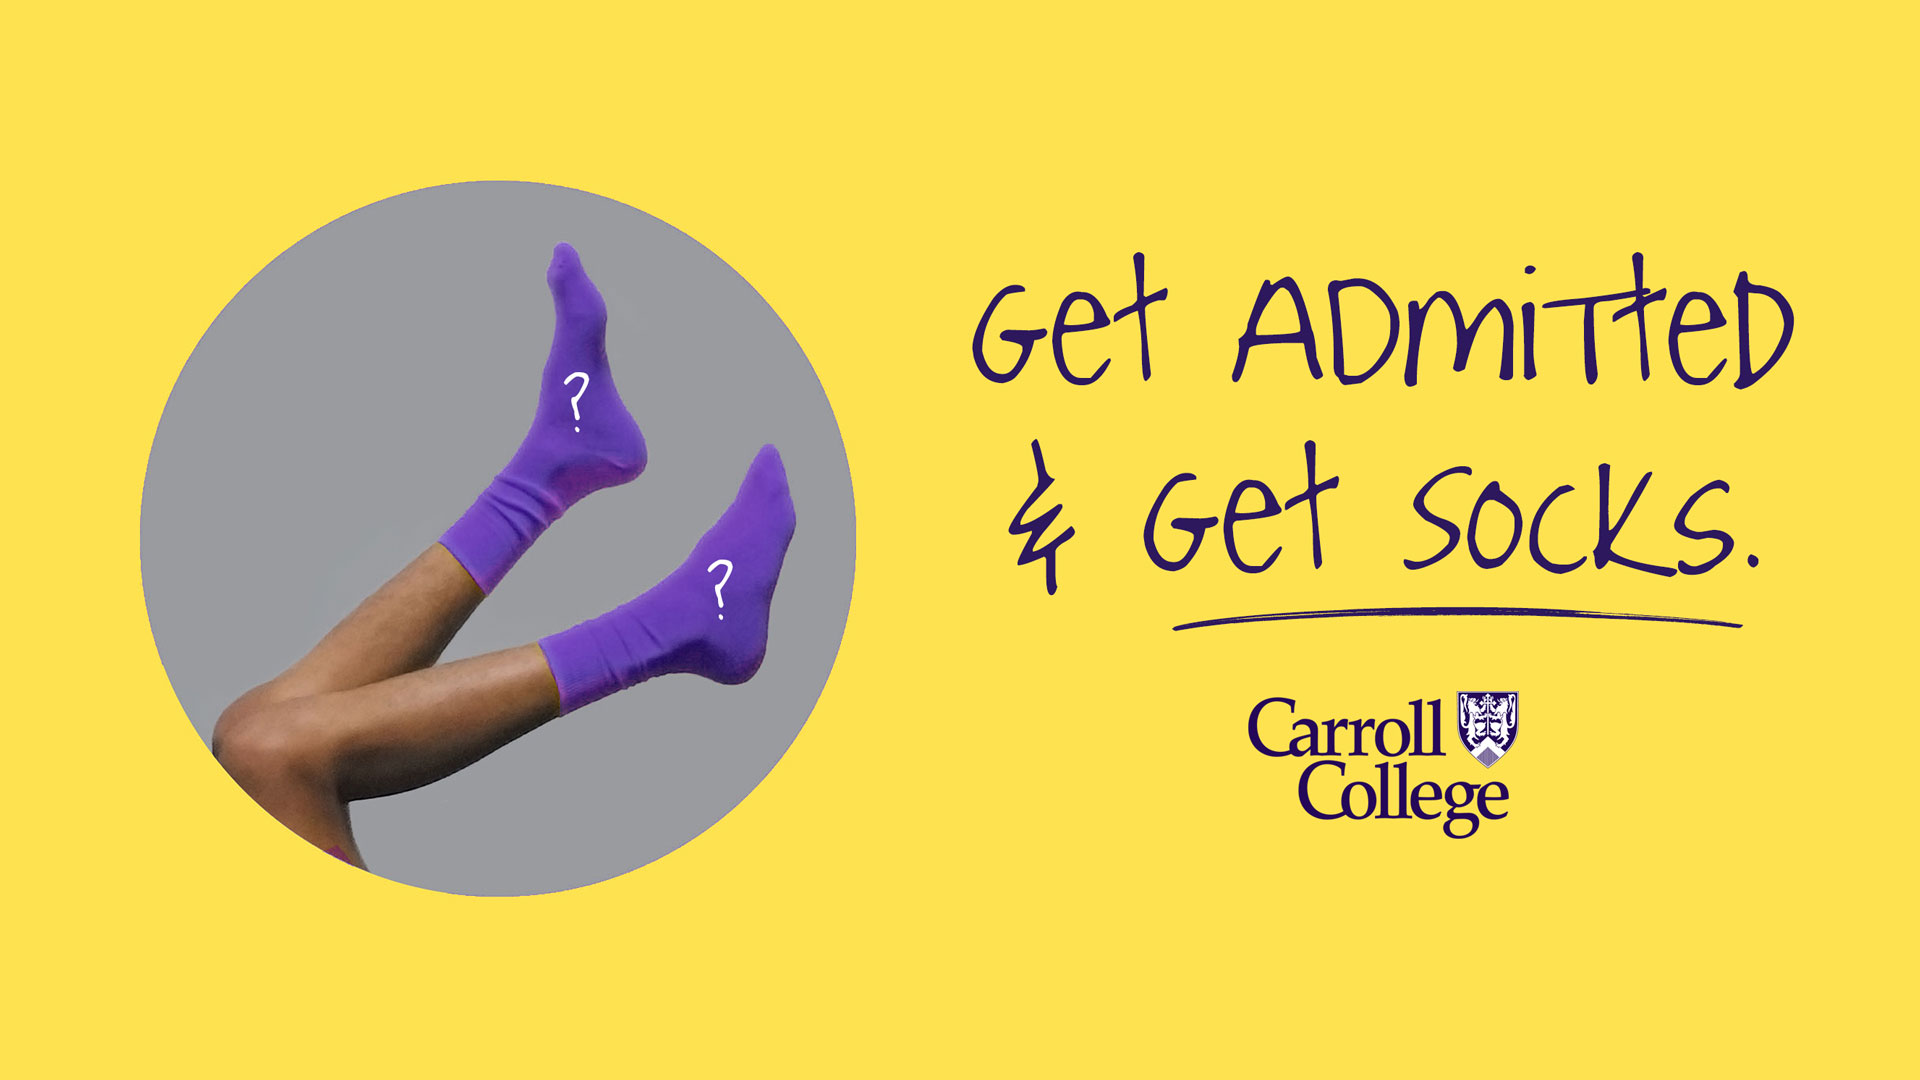 Get Admitted and Get Socks